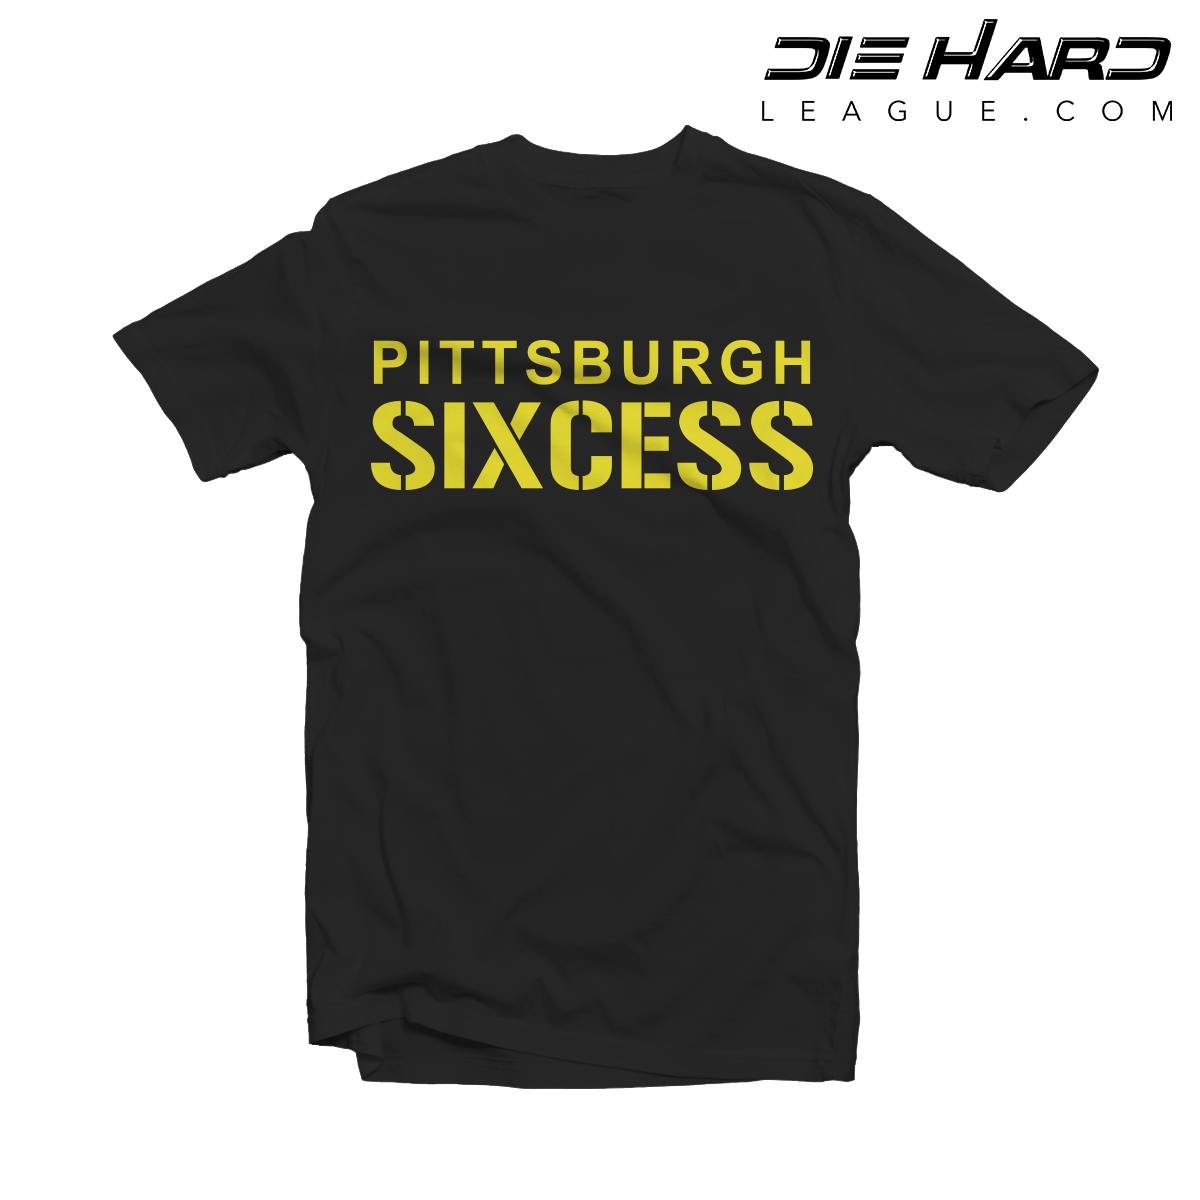 40ed84a33c5 Pittsburgh Steelers Shirt - SIXCESS Black Tee